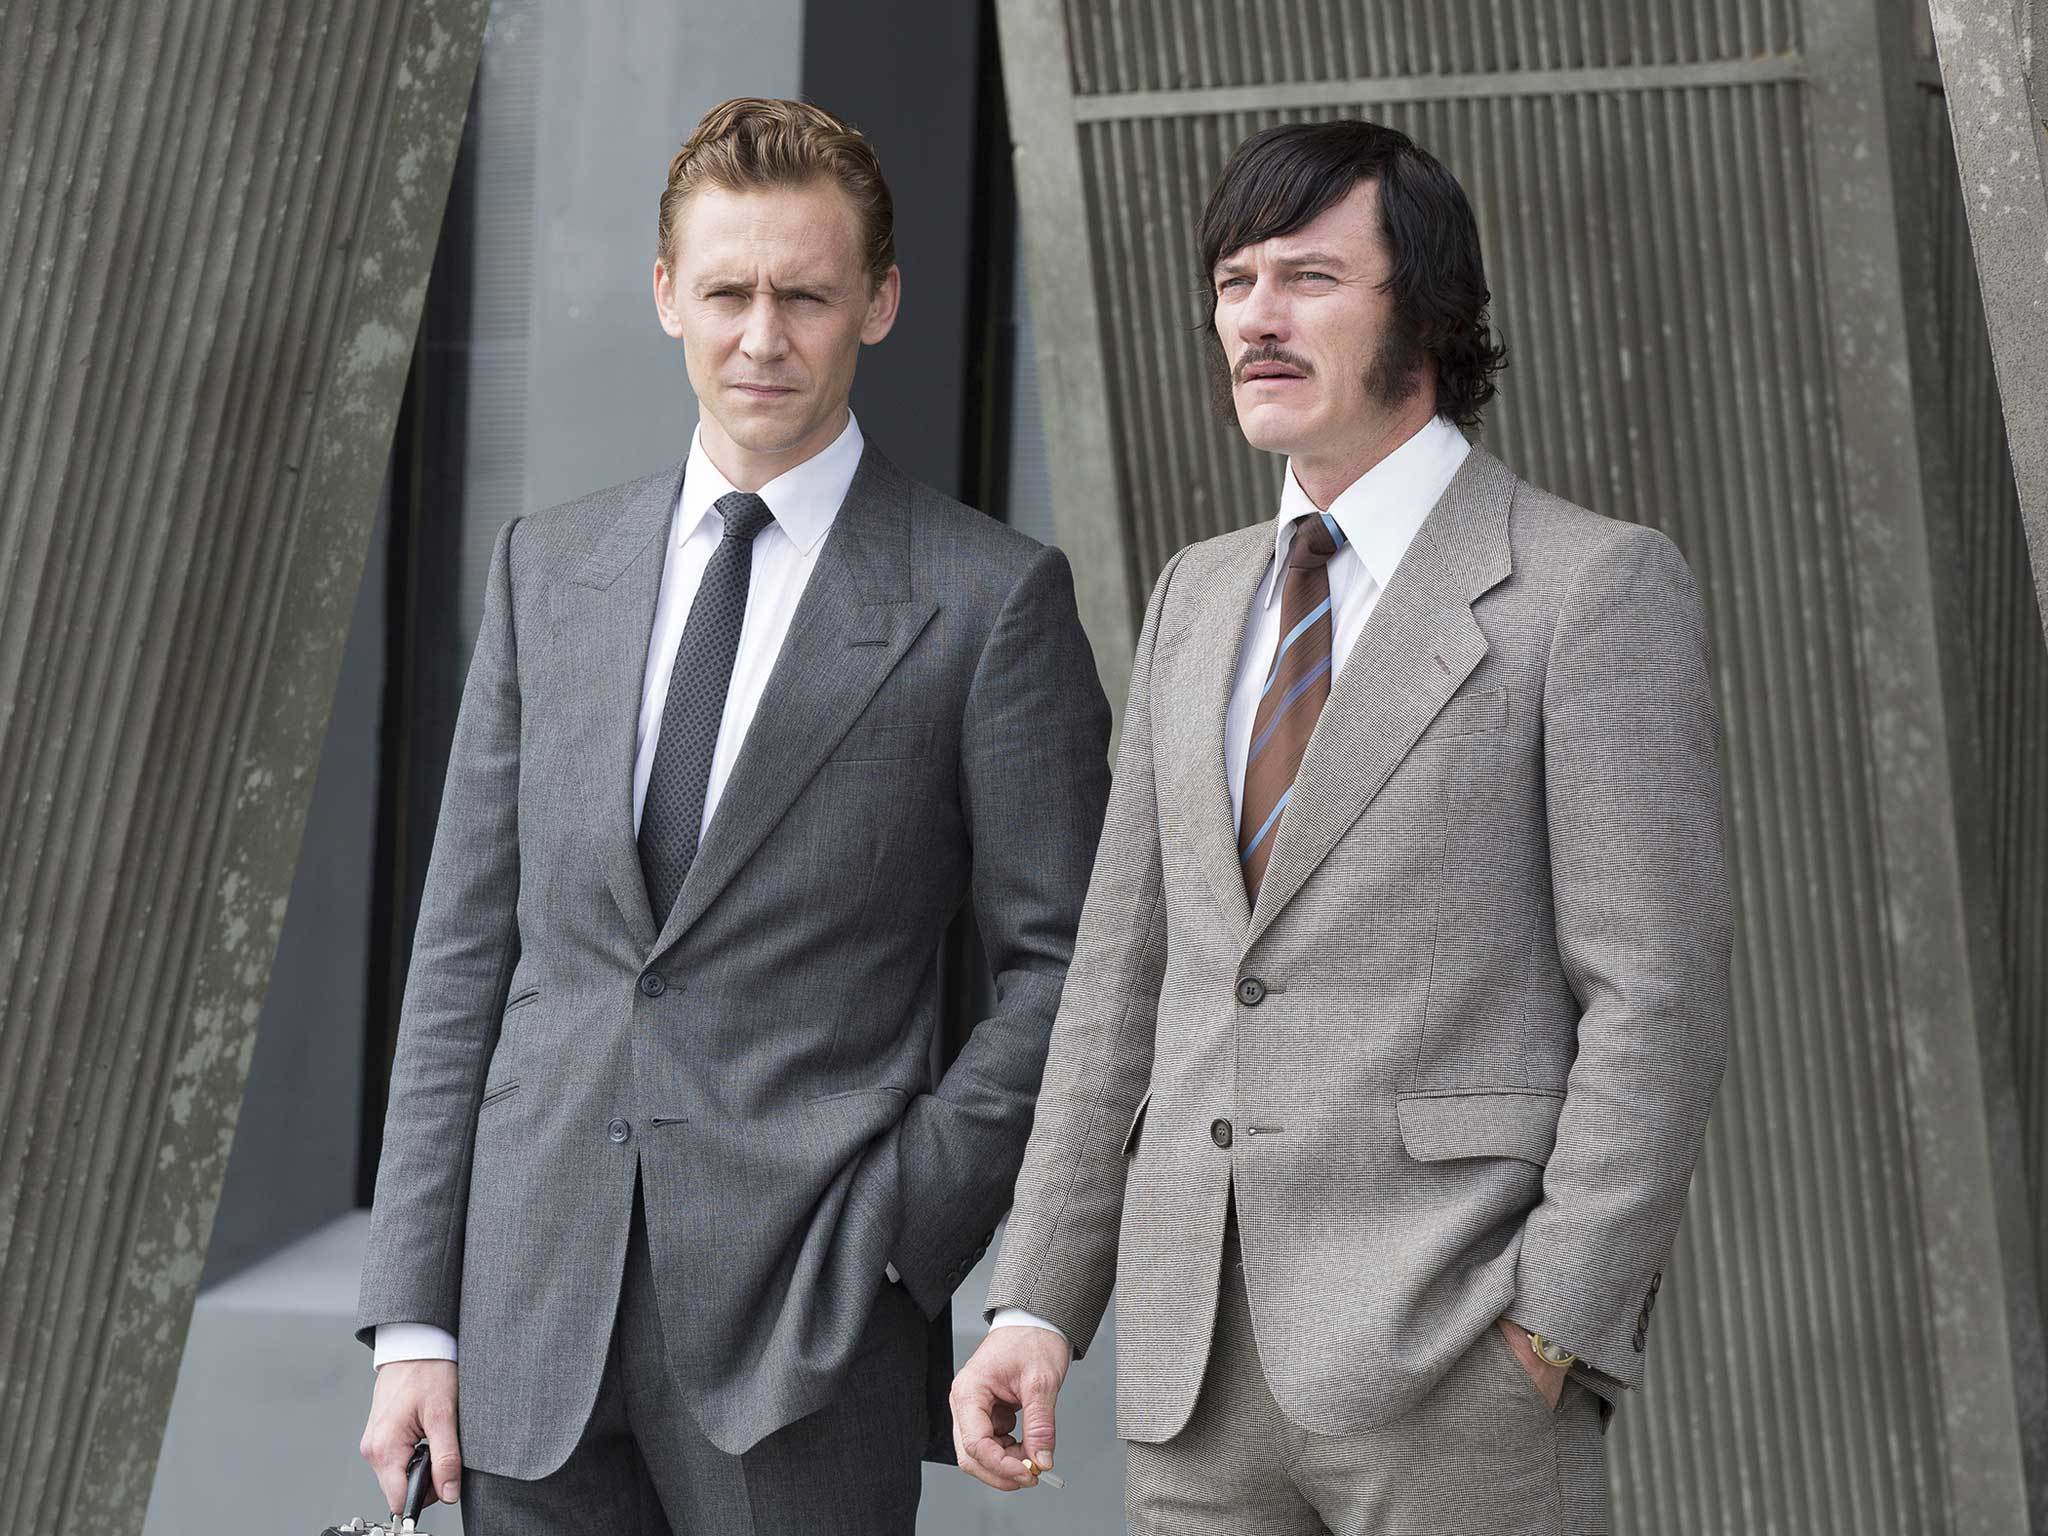 Still from High Rise directed by Ben Wheatley